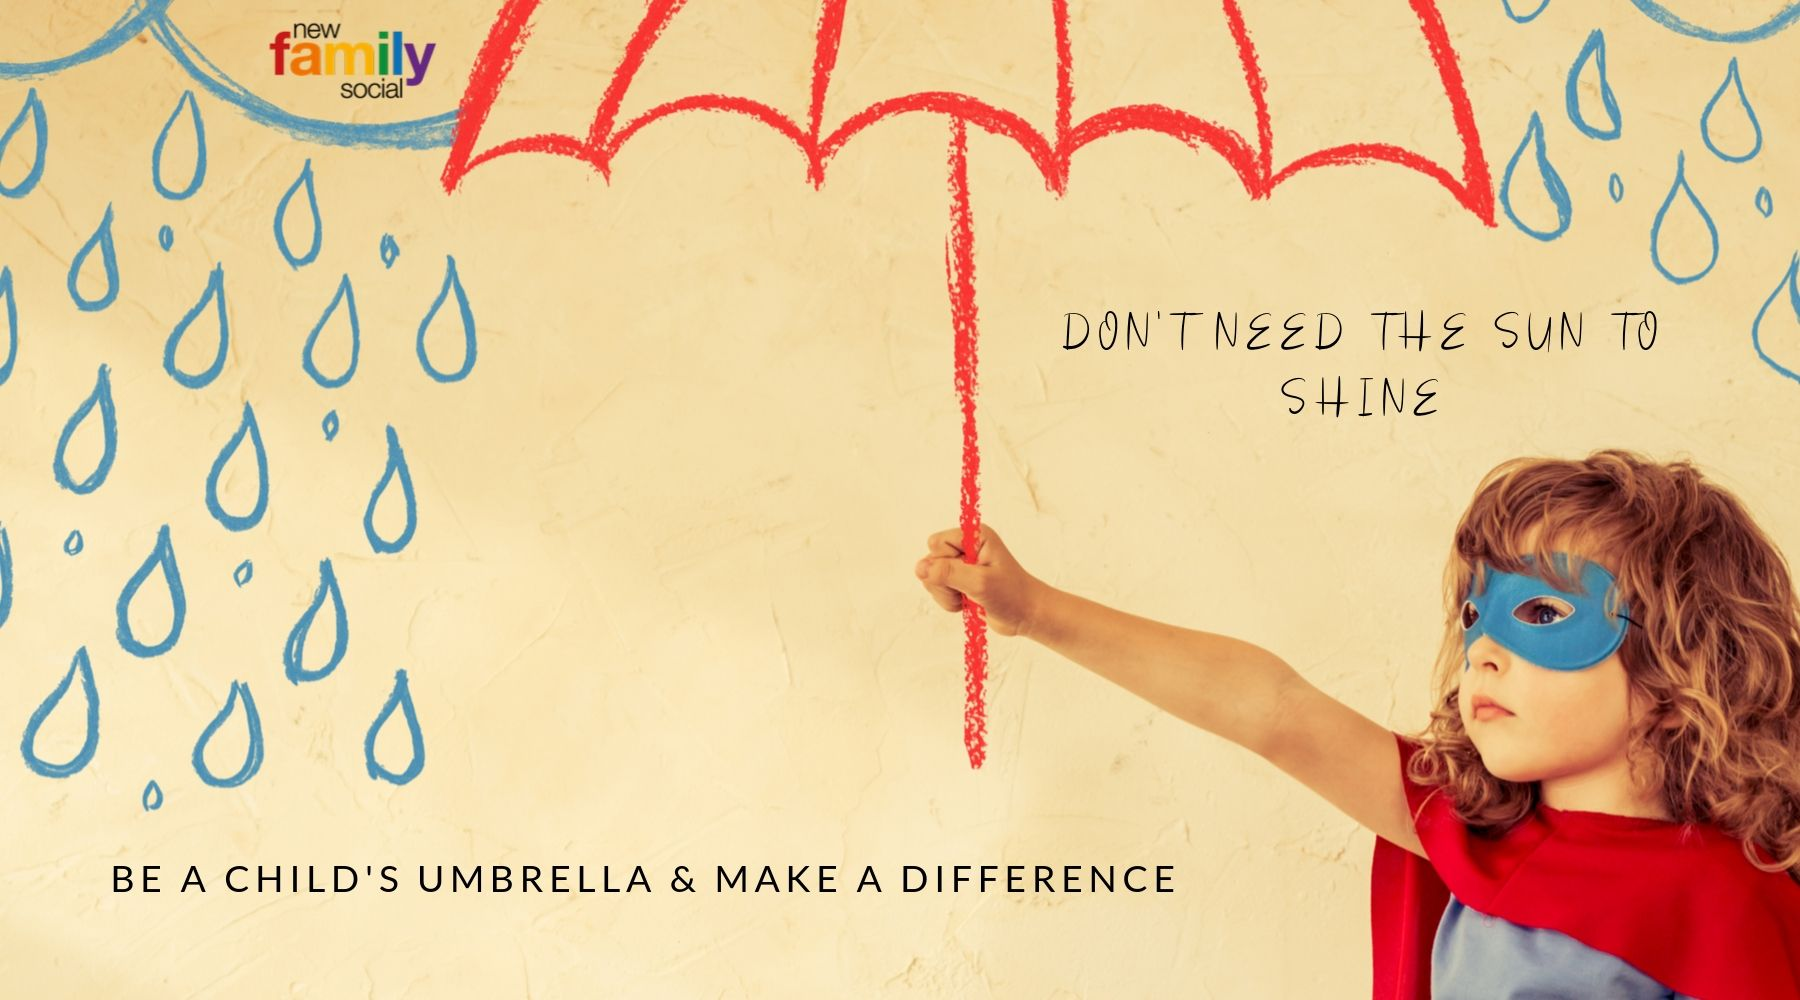 Girl with umbrella - you can protect her whatever the weather - join us